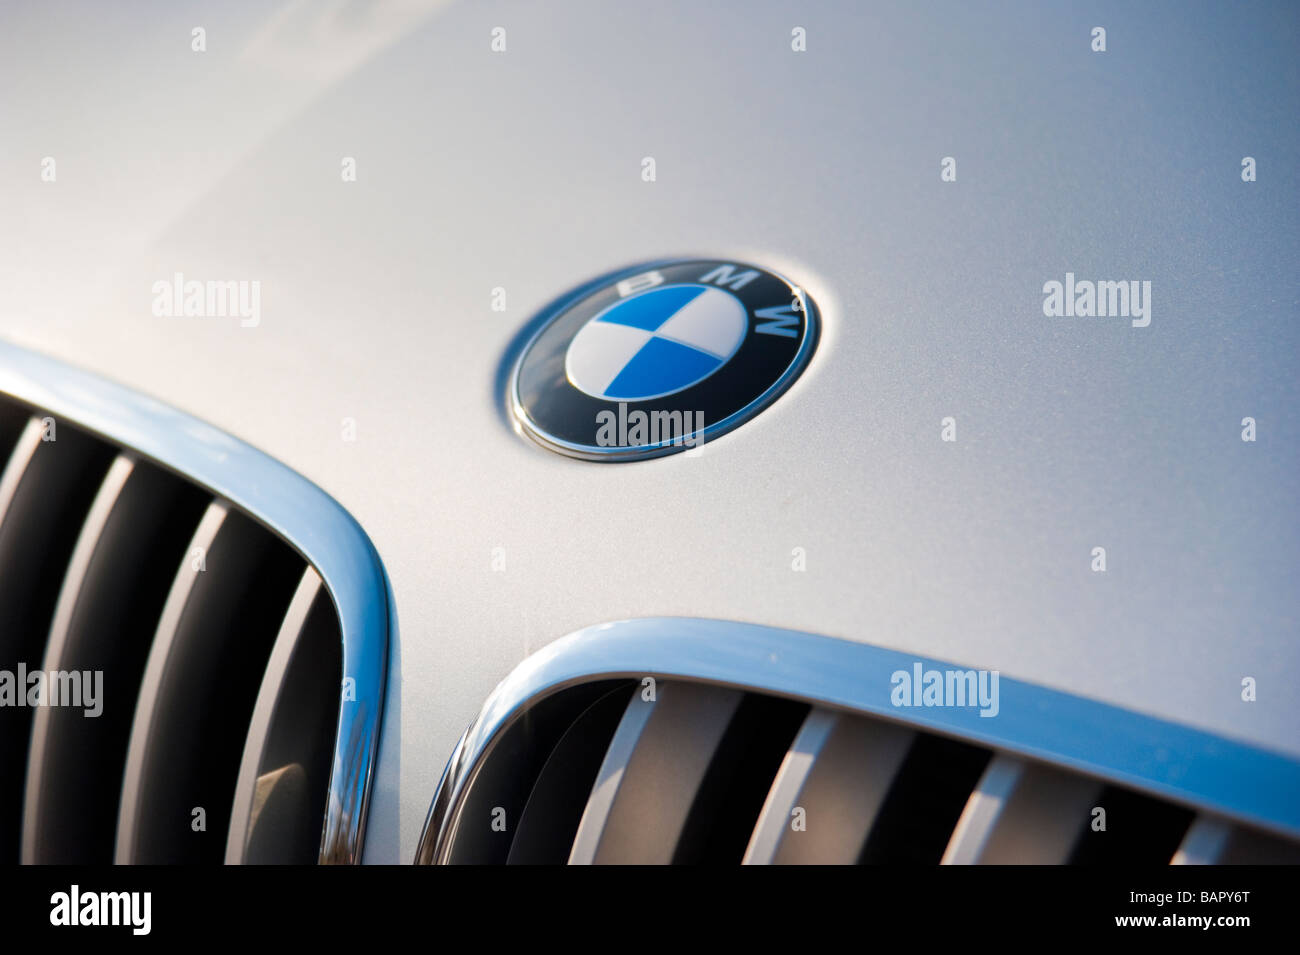 bmw x6 front close up with emblem stock photo 23861232 alamy. Black Bedroom Furniture Sets. Home Design Ideas